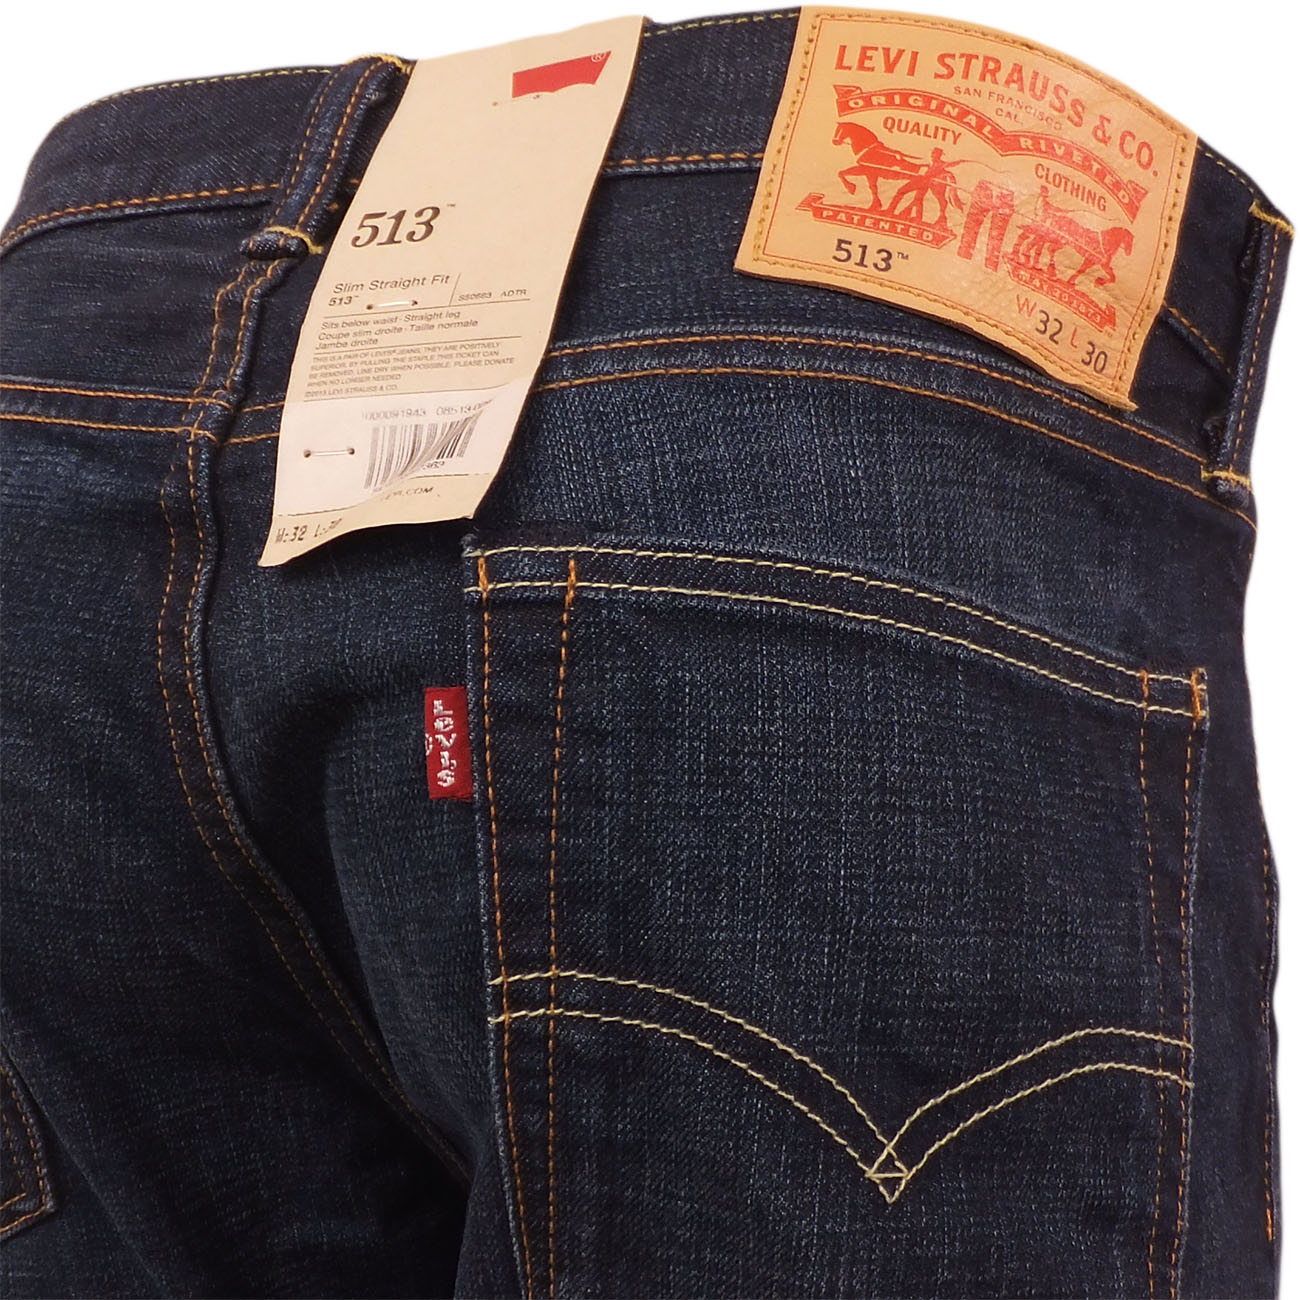 For the warmer months, Levi's® offers a great selection of women's denim shorts, ranging from cut-offs to Bermudas, and ankle-length jeans. Levi's® covetable ® Shorts are always a popular summer pick. Levi's® also carries an array of sizes to fit all body types.